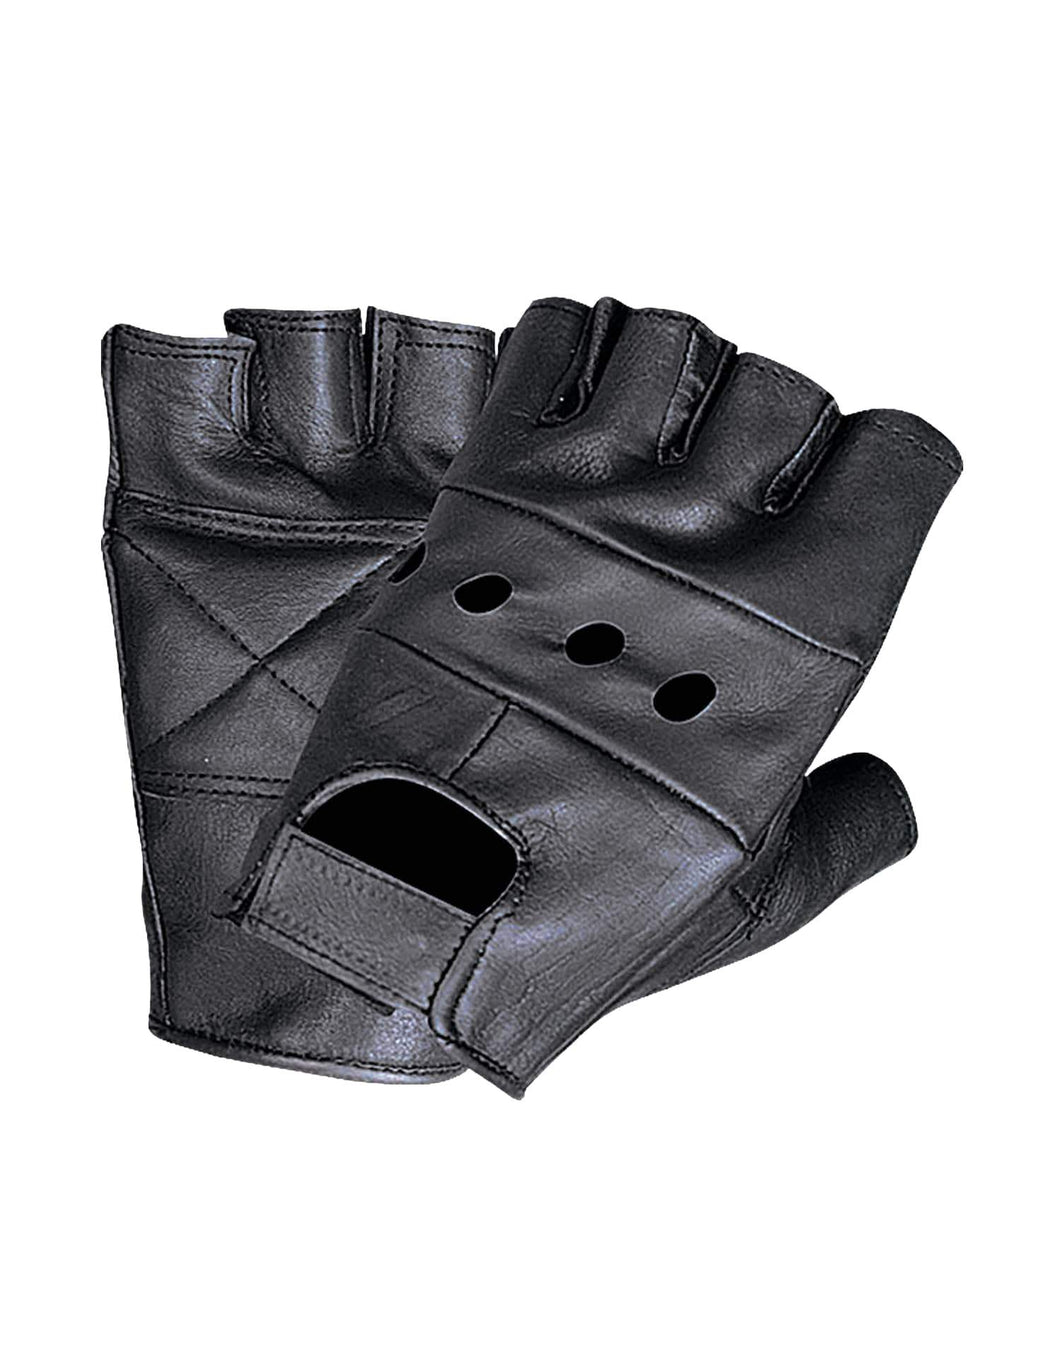 UNIK Fingerless Cut Piece Gloves